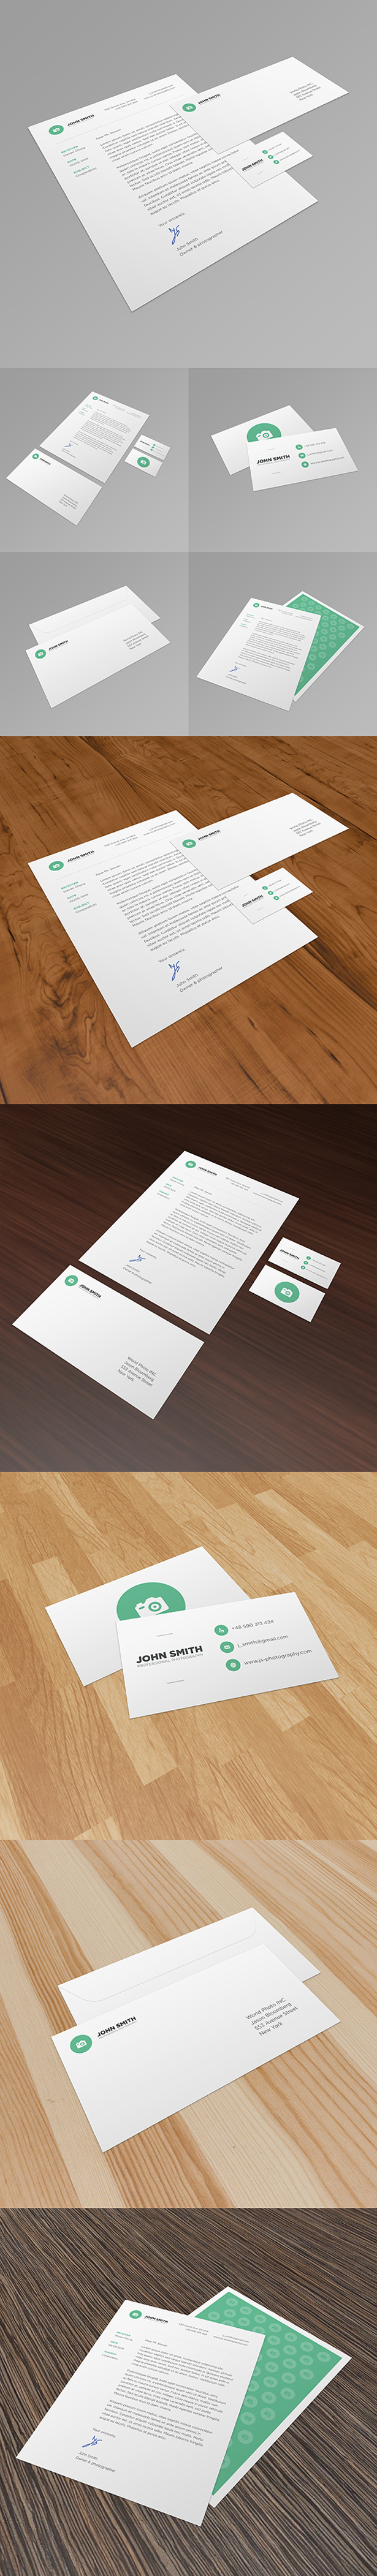 Stationery Mockup PSD Pack